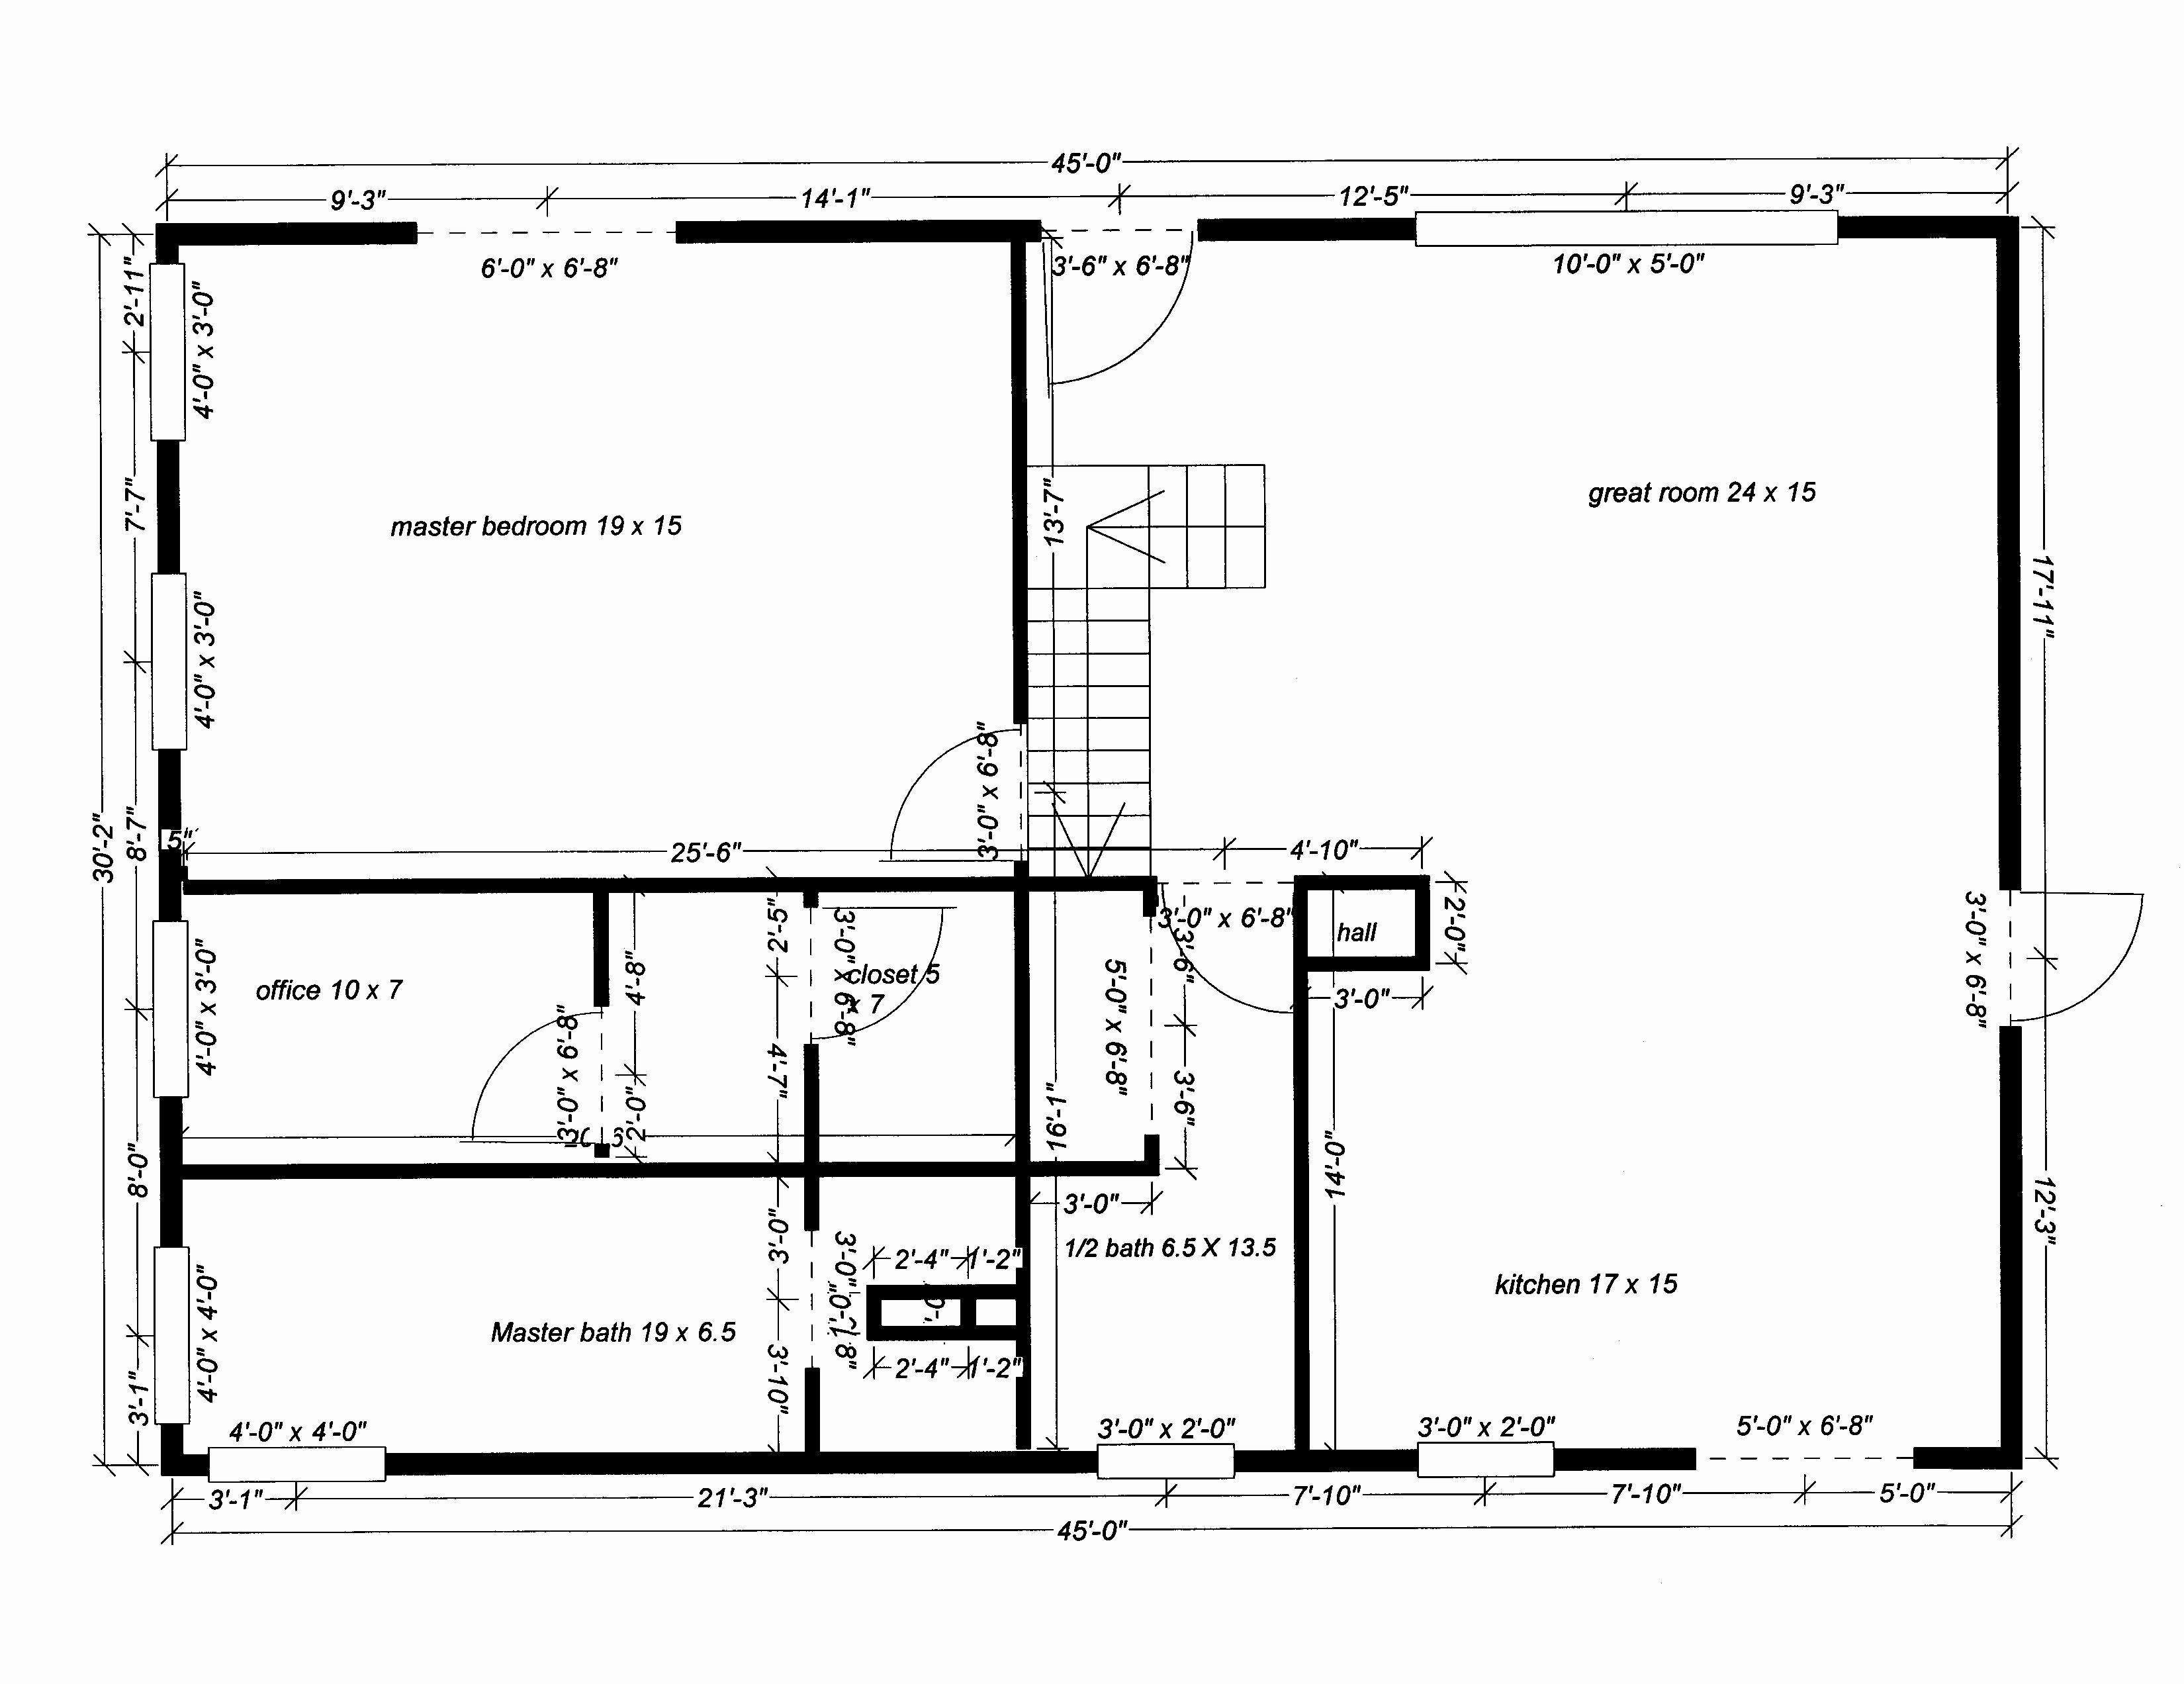 Excel Floor Plan Template Elegant Fresh Floor Plan Excel Gallery Home House Floor Plans